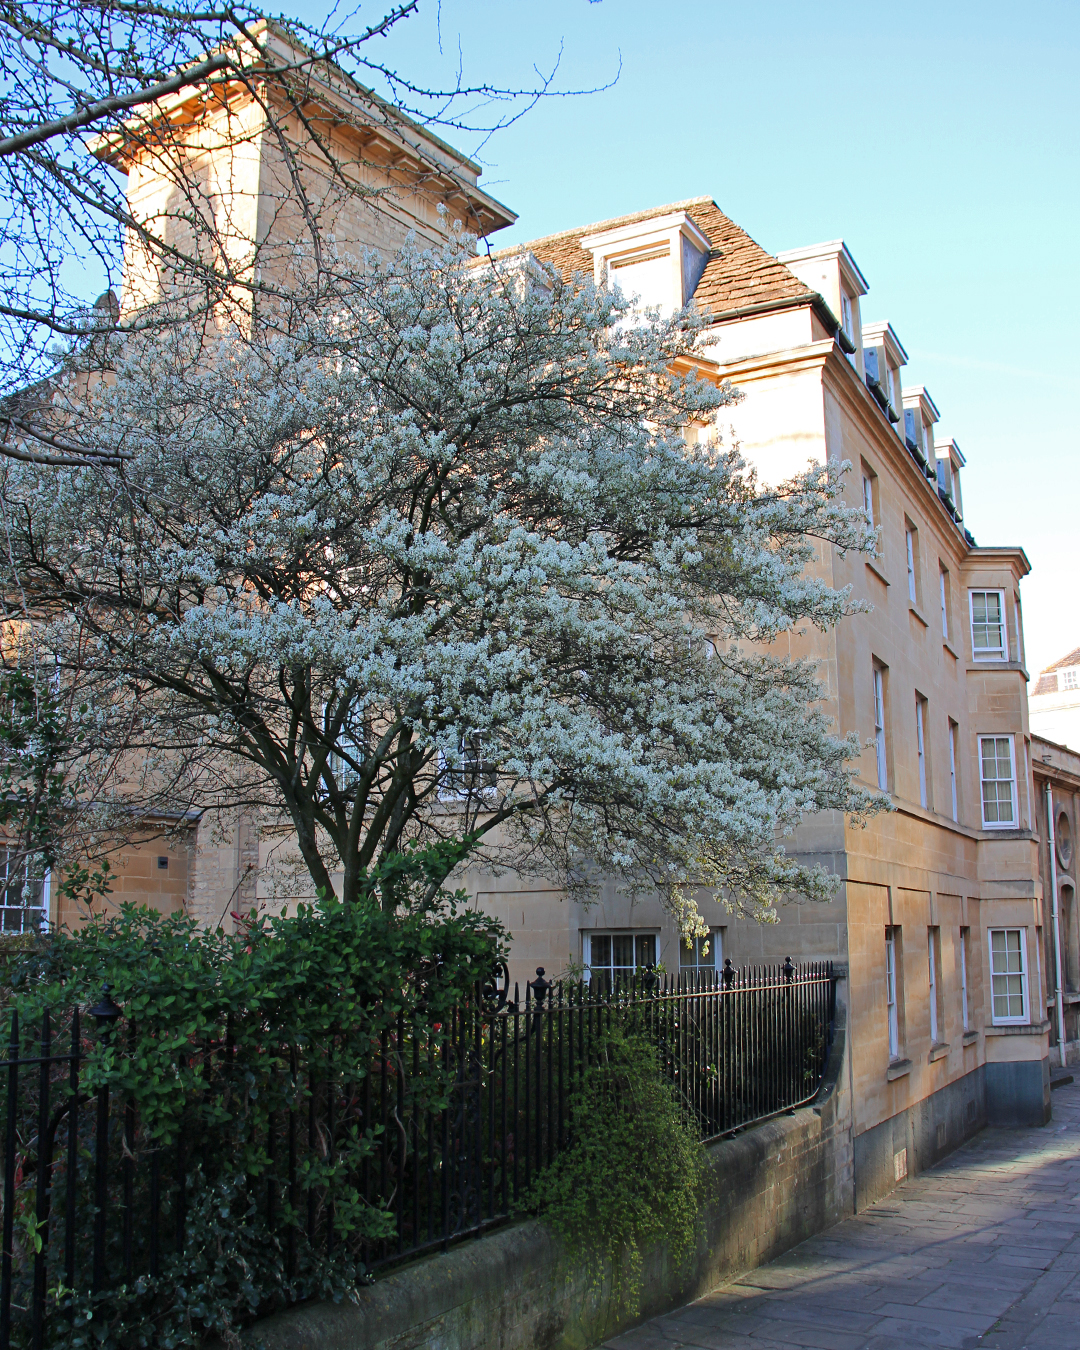 bath-mini-break-holiday-things-to-do-blossom.jpg